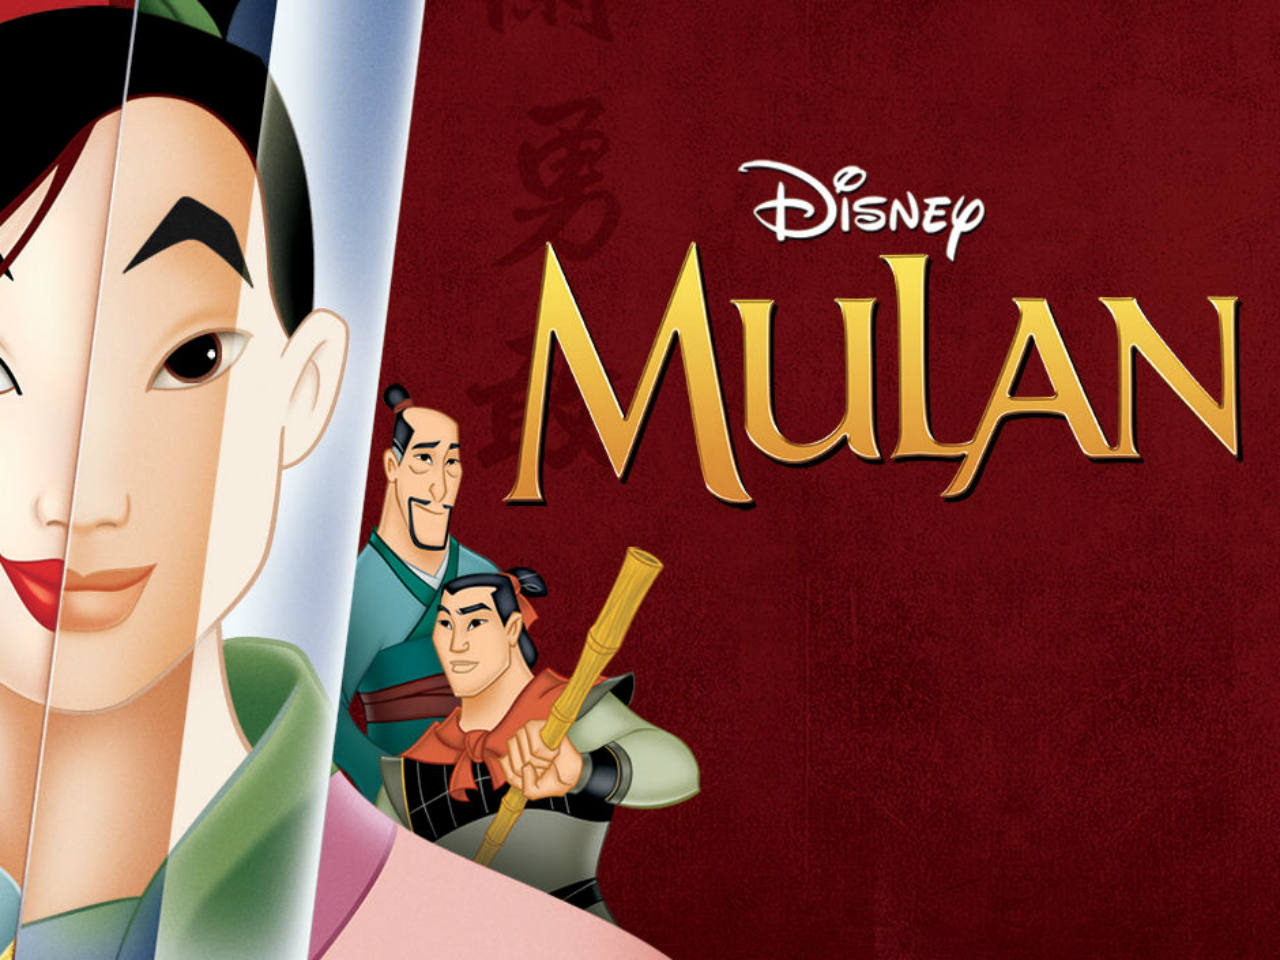 A movie poster of the kids' movie Mulan